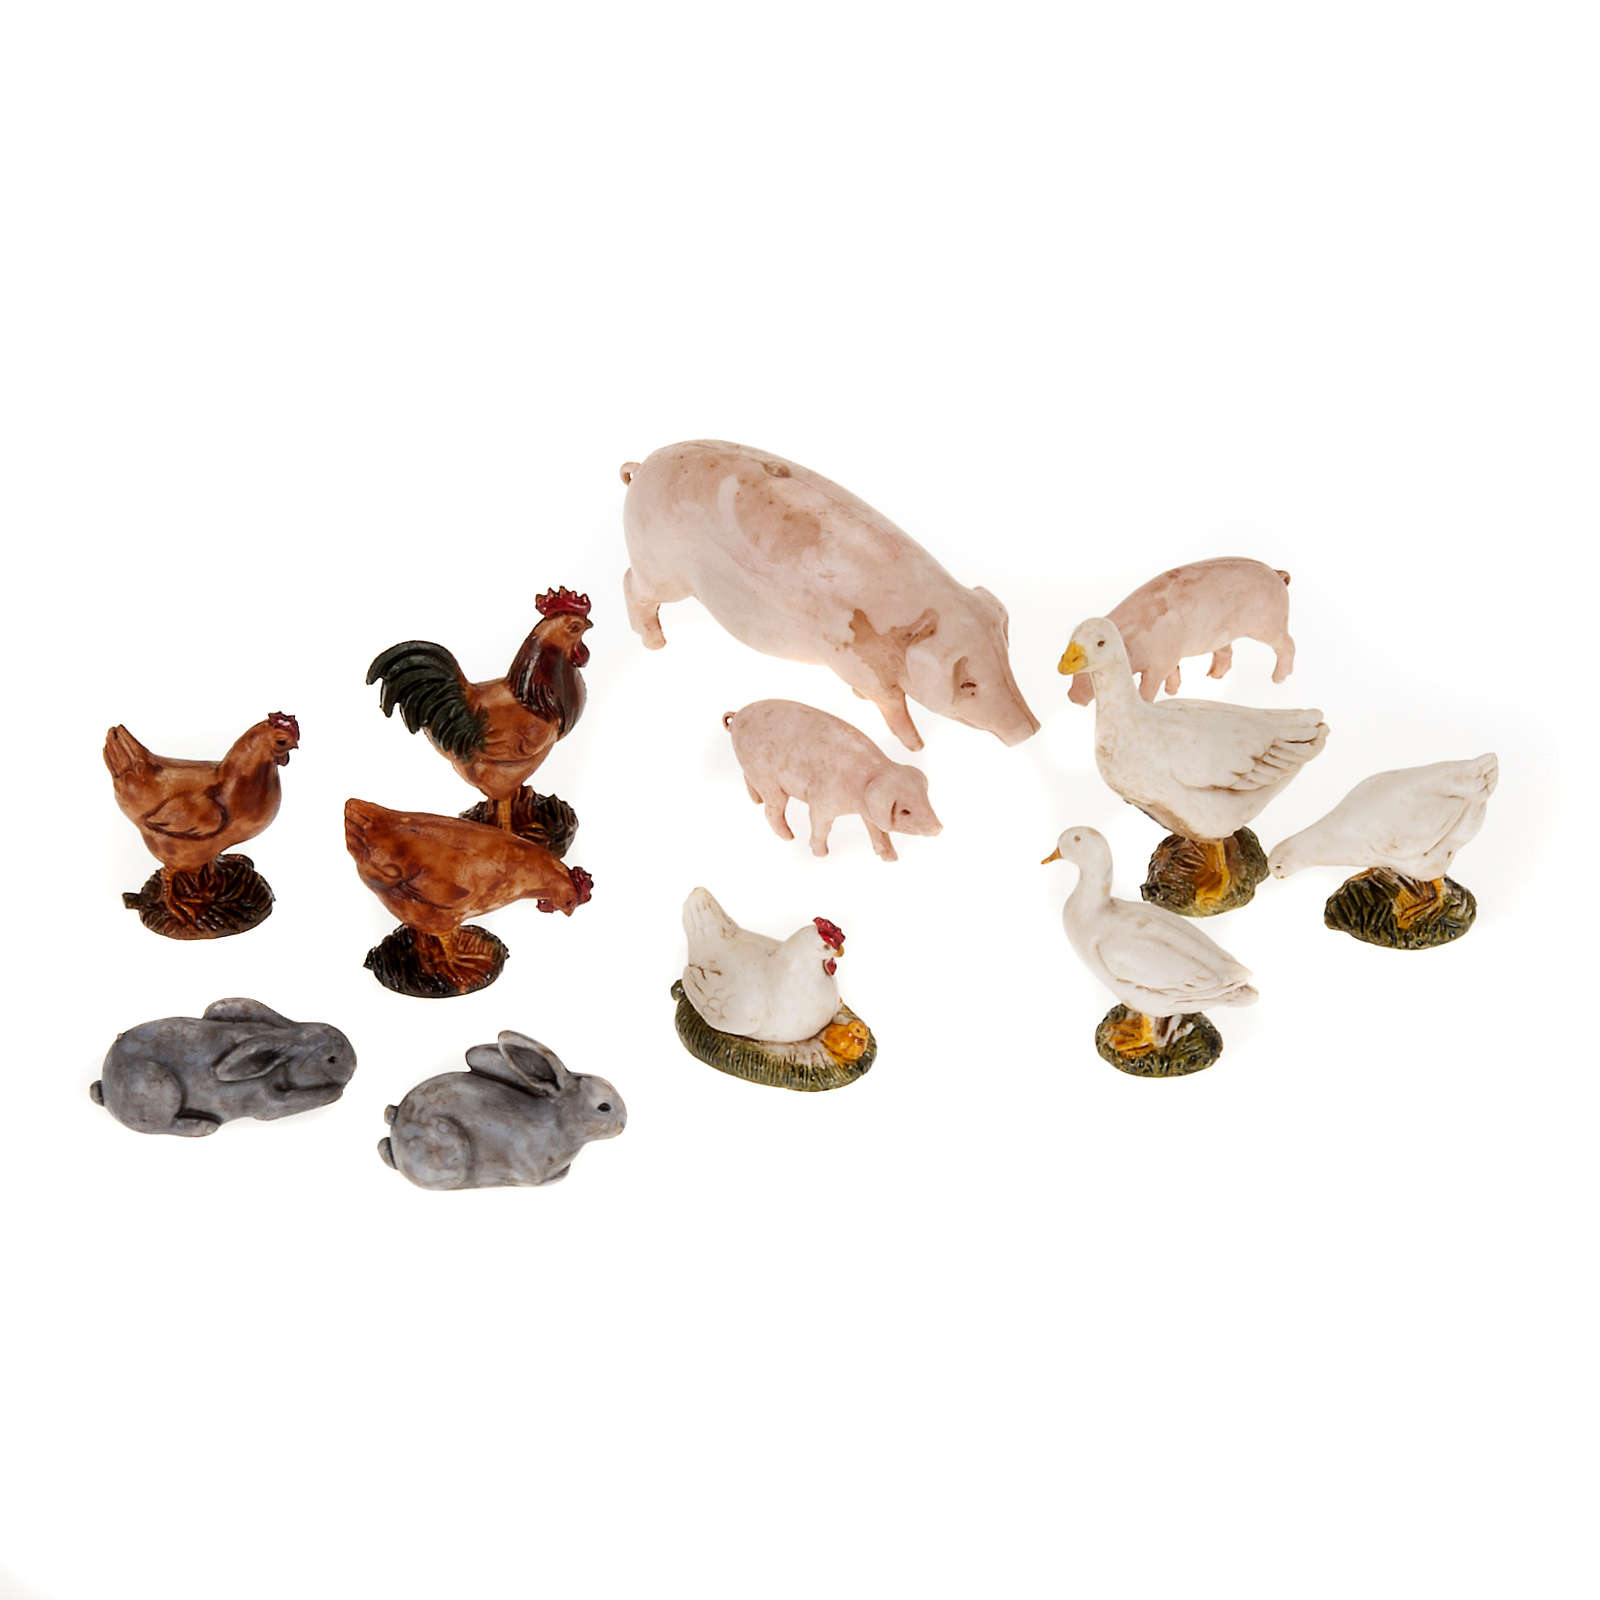 Nativity scene figurines, farm yard animals 12pcs 3